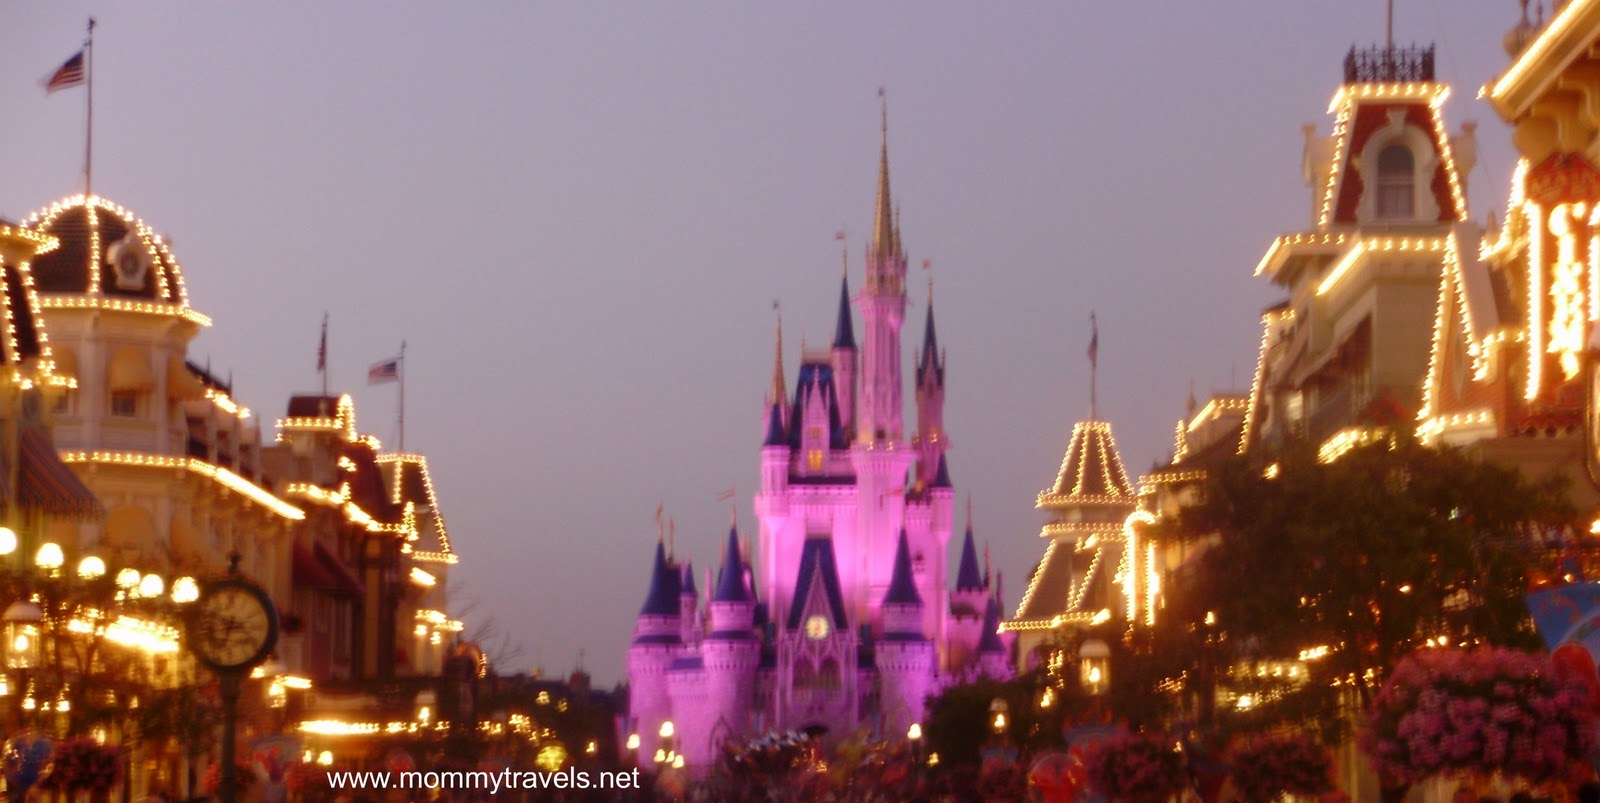 Cinderella's Castle at Magic Kingdom at Disney World at Dusk